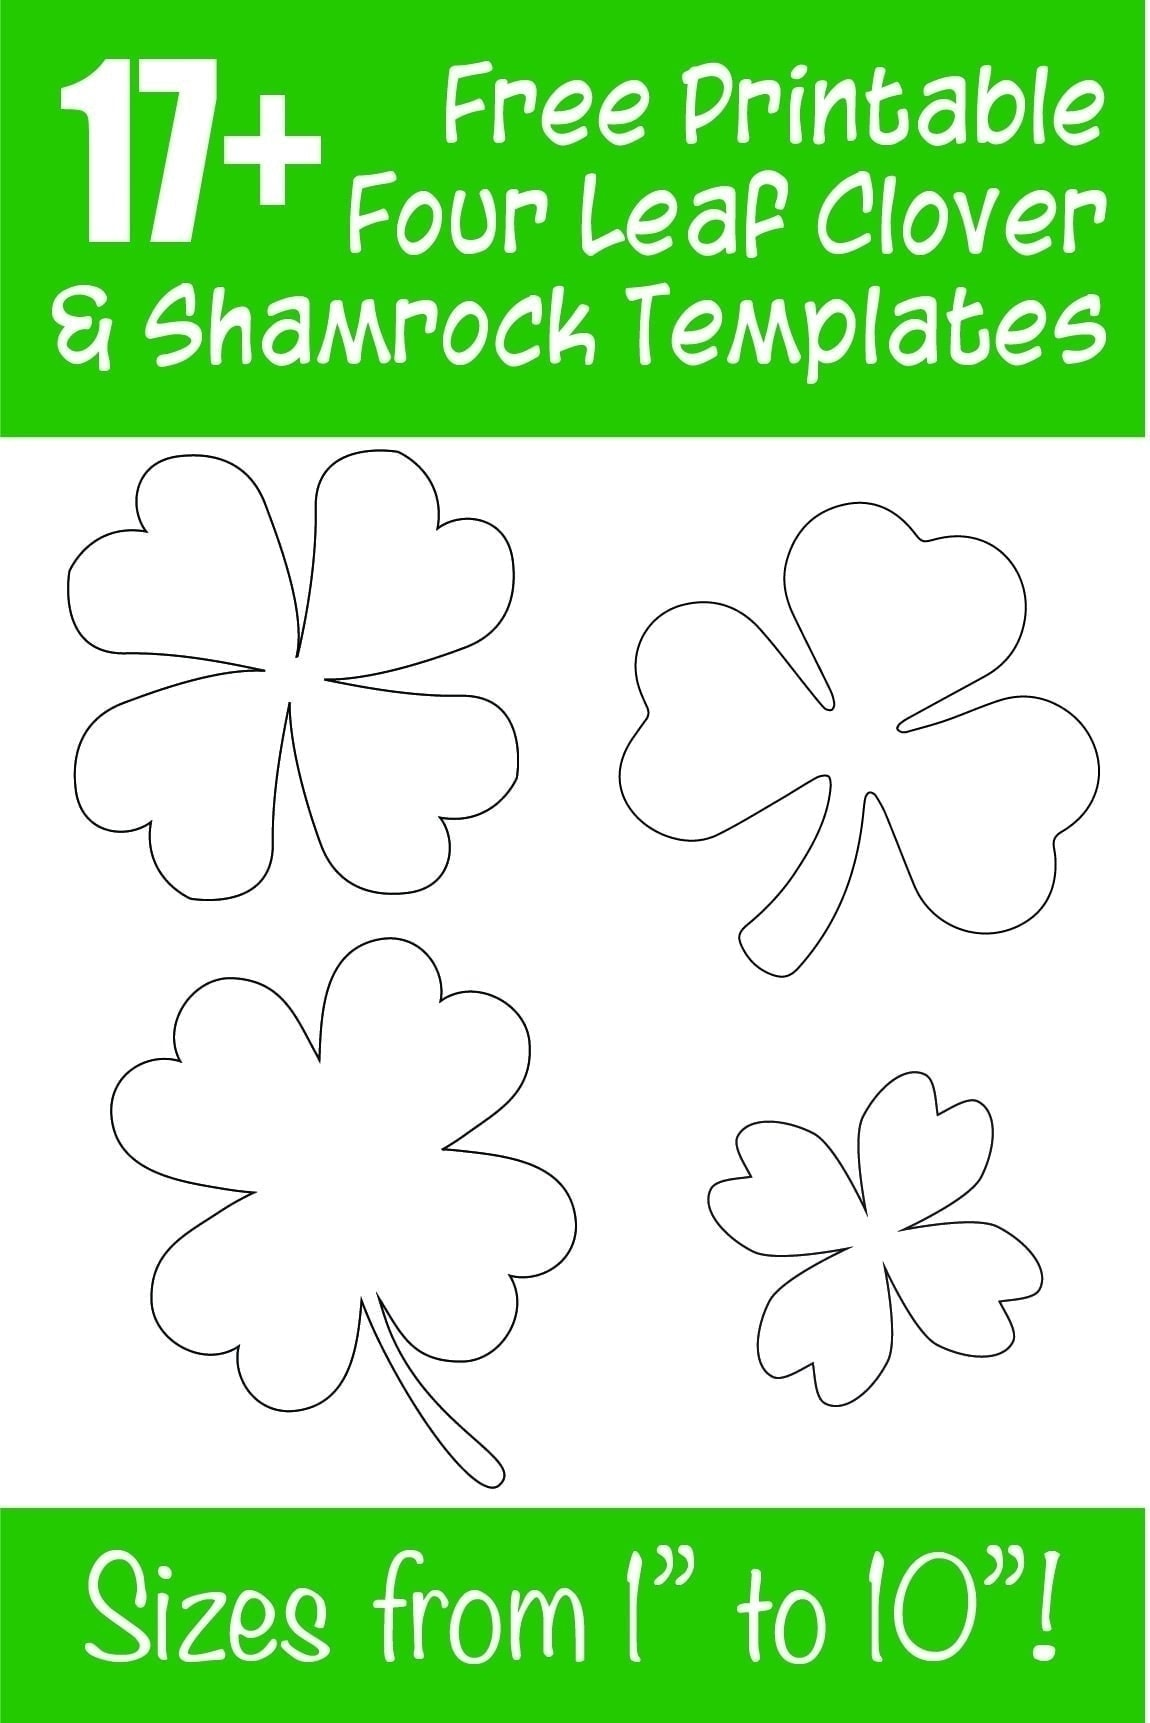 graphic about Printable Shamrock identify 17+ No cost Printable 4 Leaf Clover Shamrock Templates